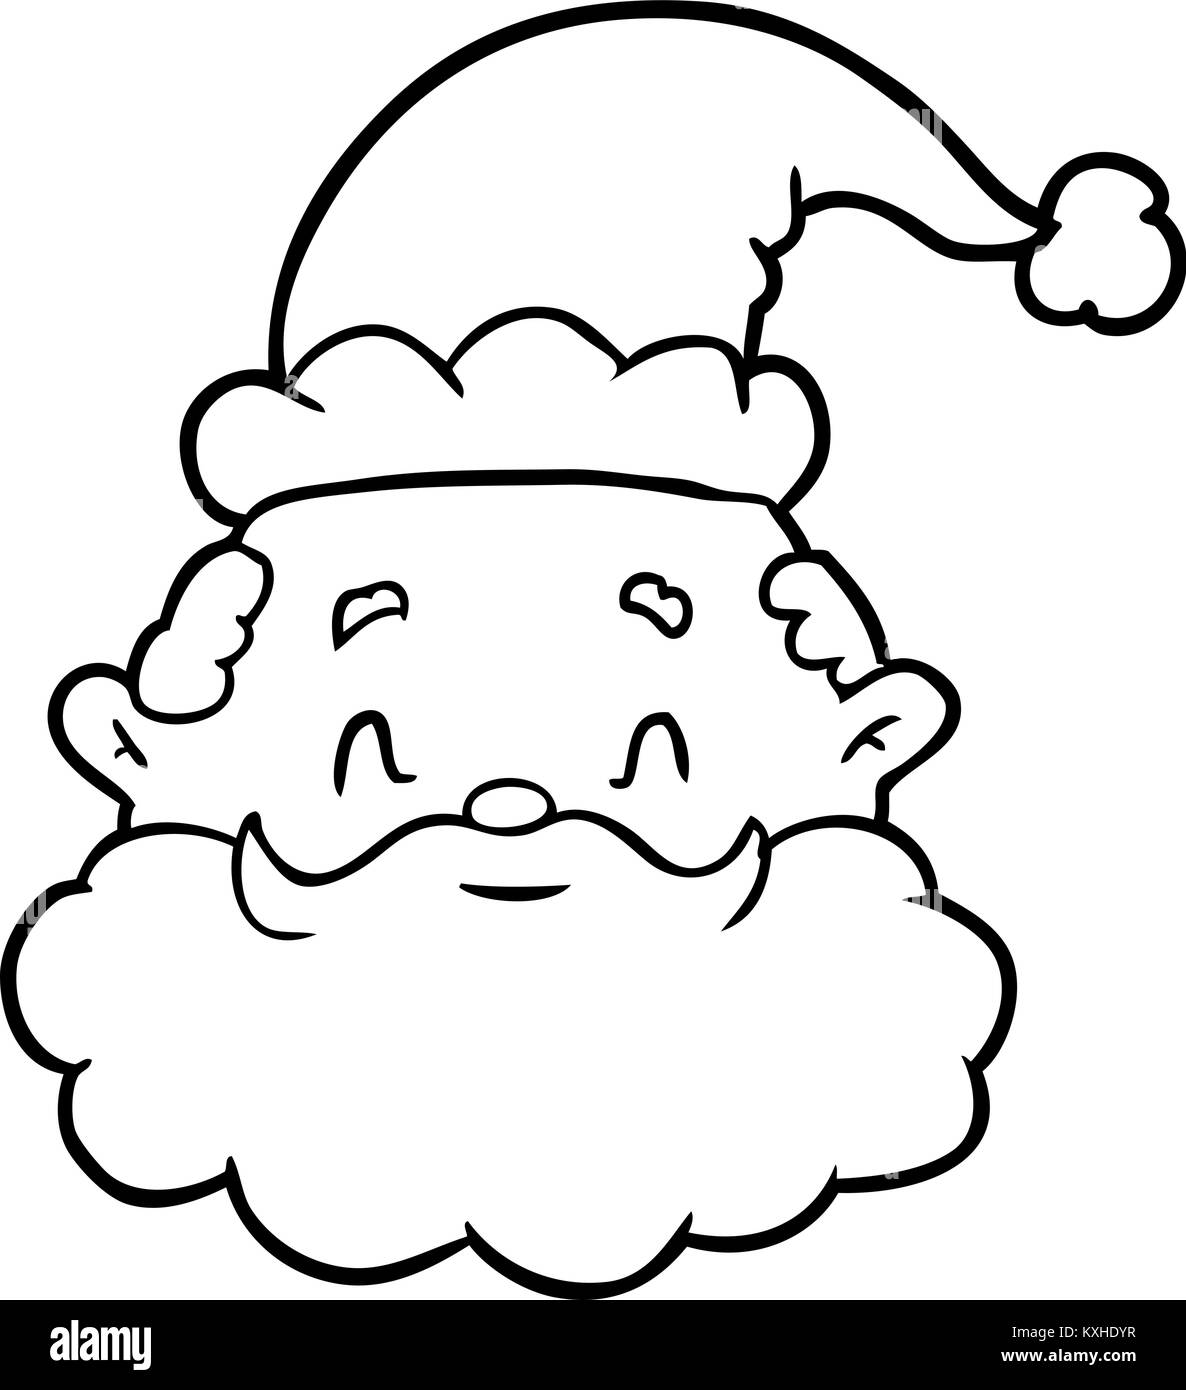 line drawing of a santa claus face stock vector image art alamy https www alamy com stock photo line drawing of a santa claus face 171258523 html